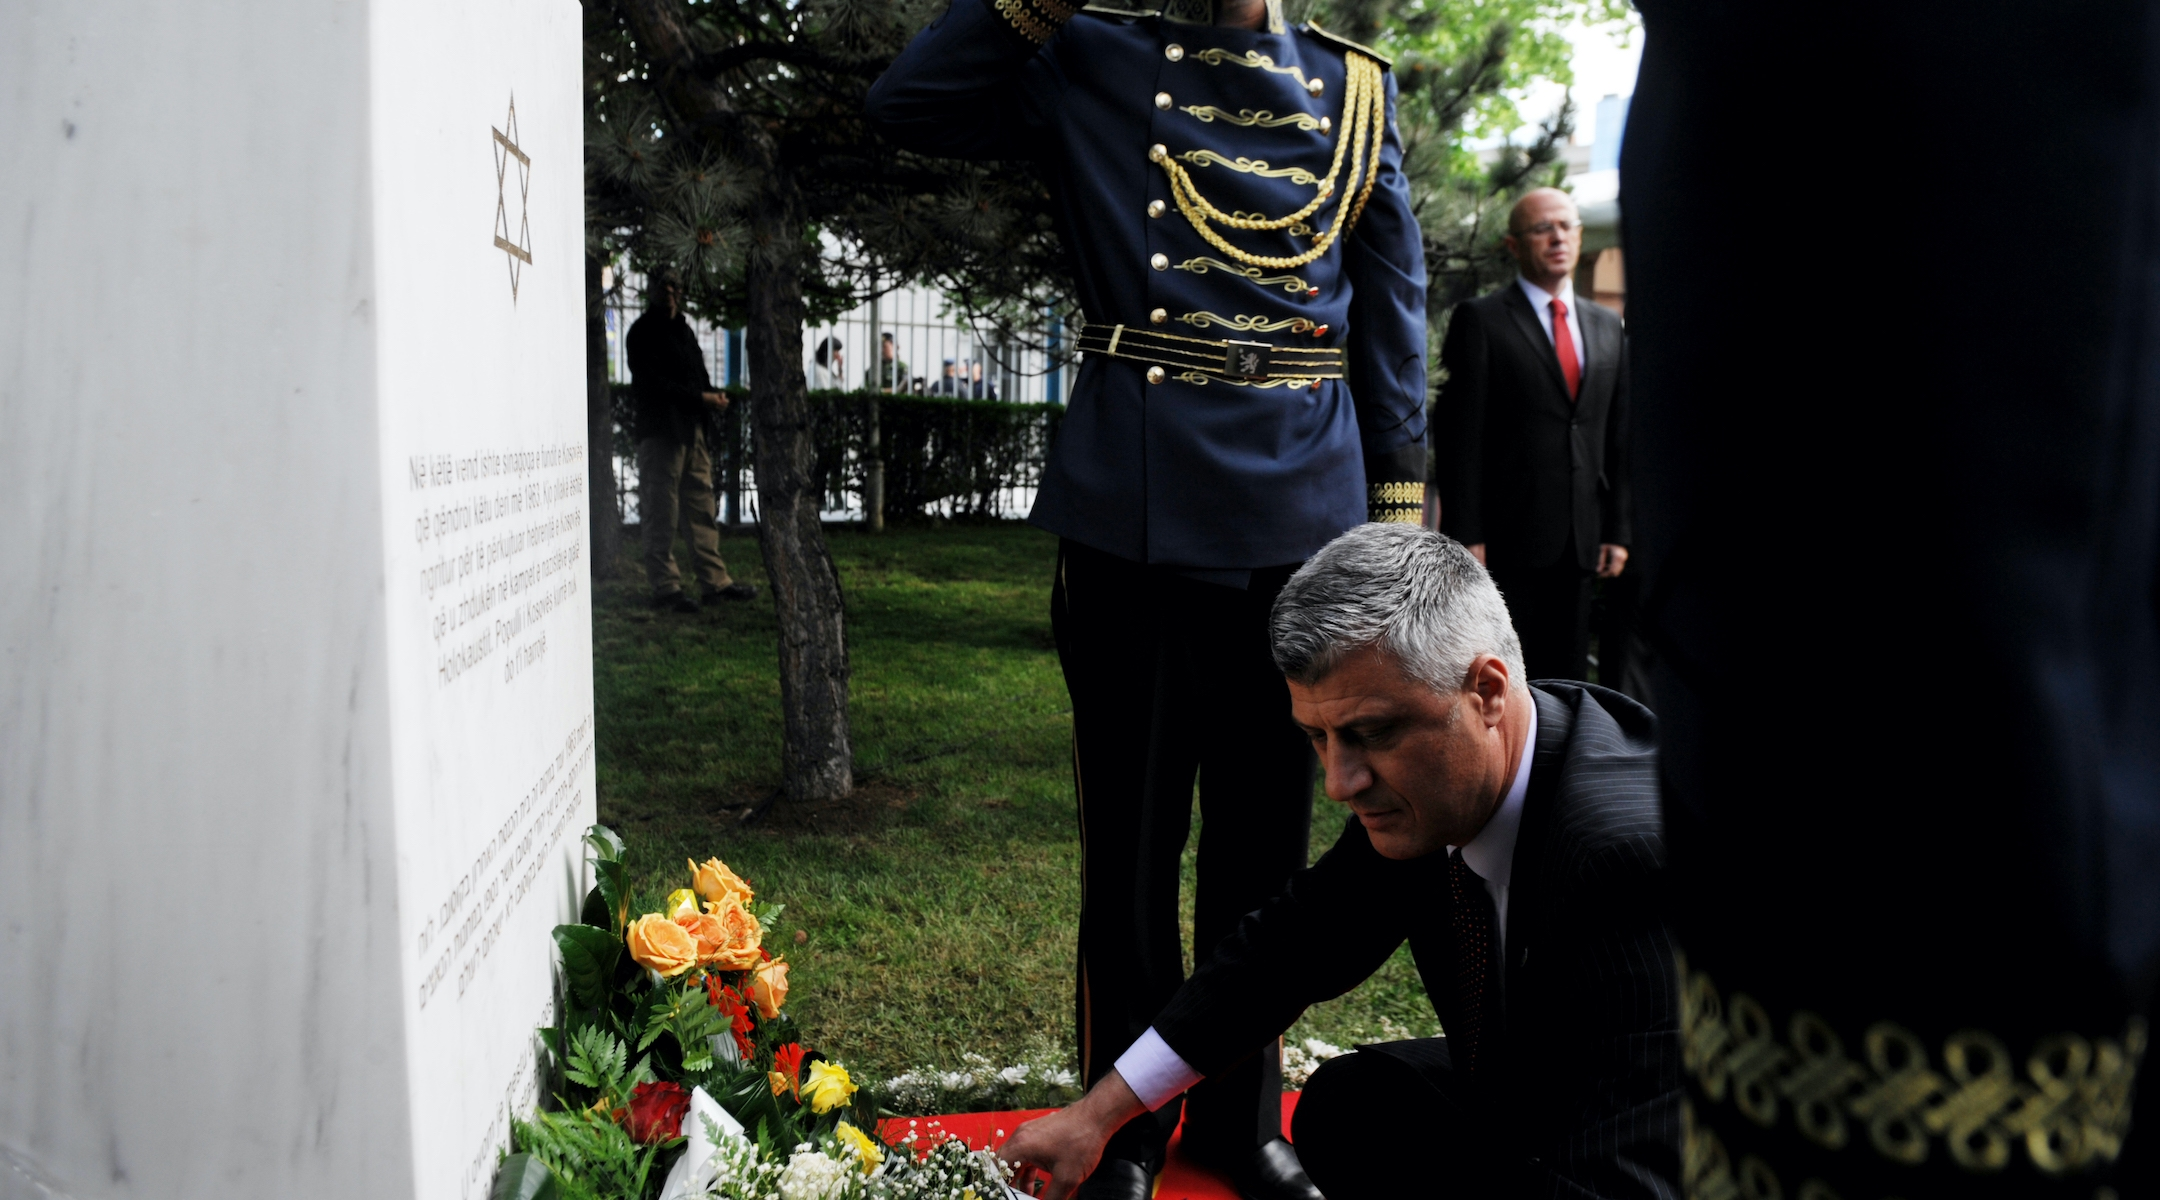 Kosovo Prime Minister Hashim Thaci places flowers in Pristina, May 23, 2013, on the commemorative plaque remembering Kosovo Jews that perished in Holocaust, at the site where the last synagogue of Kosovo stood until 1963. (Armend Nimani/AFP via Getty Images)